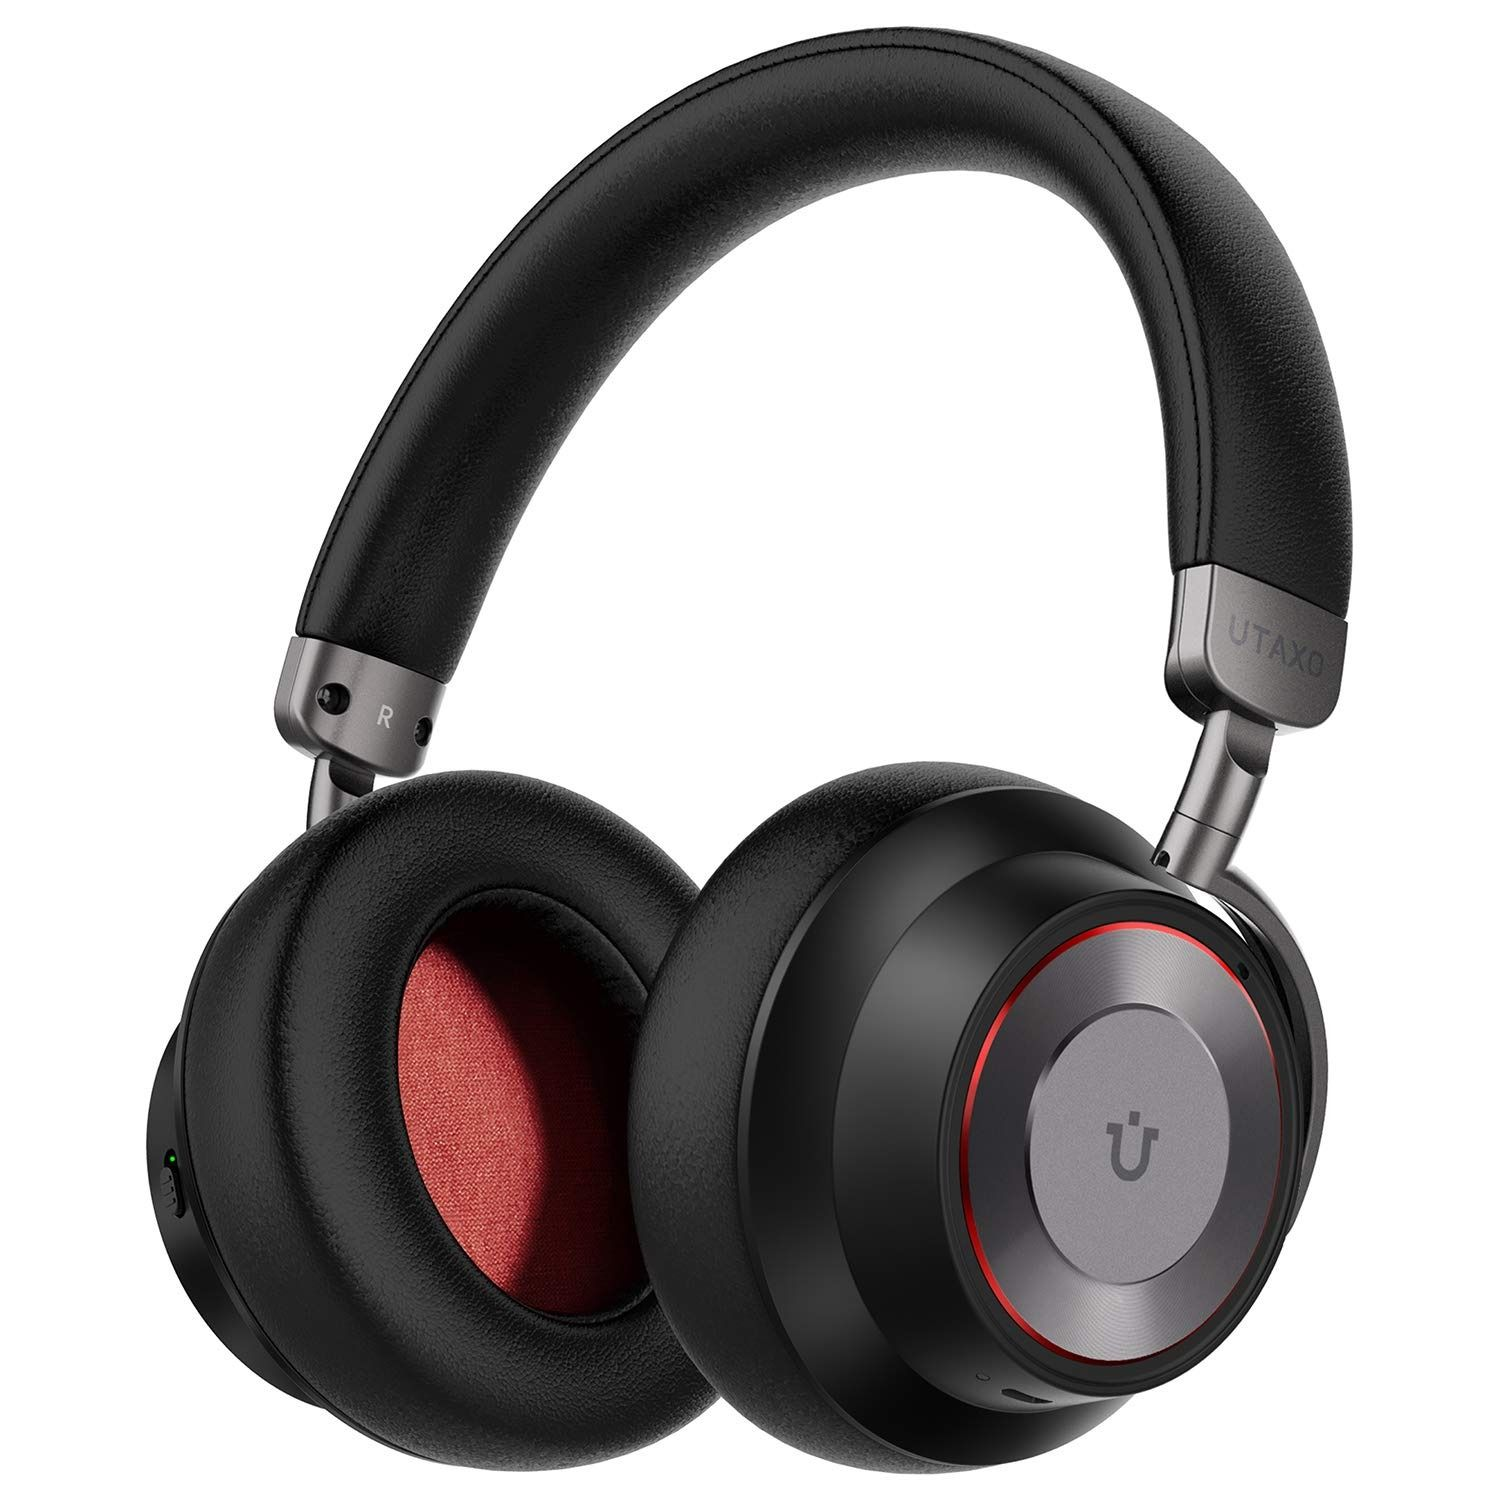 Find different details of Utaxo Bluetooth Headphones with